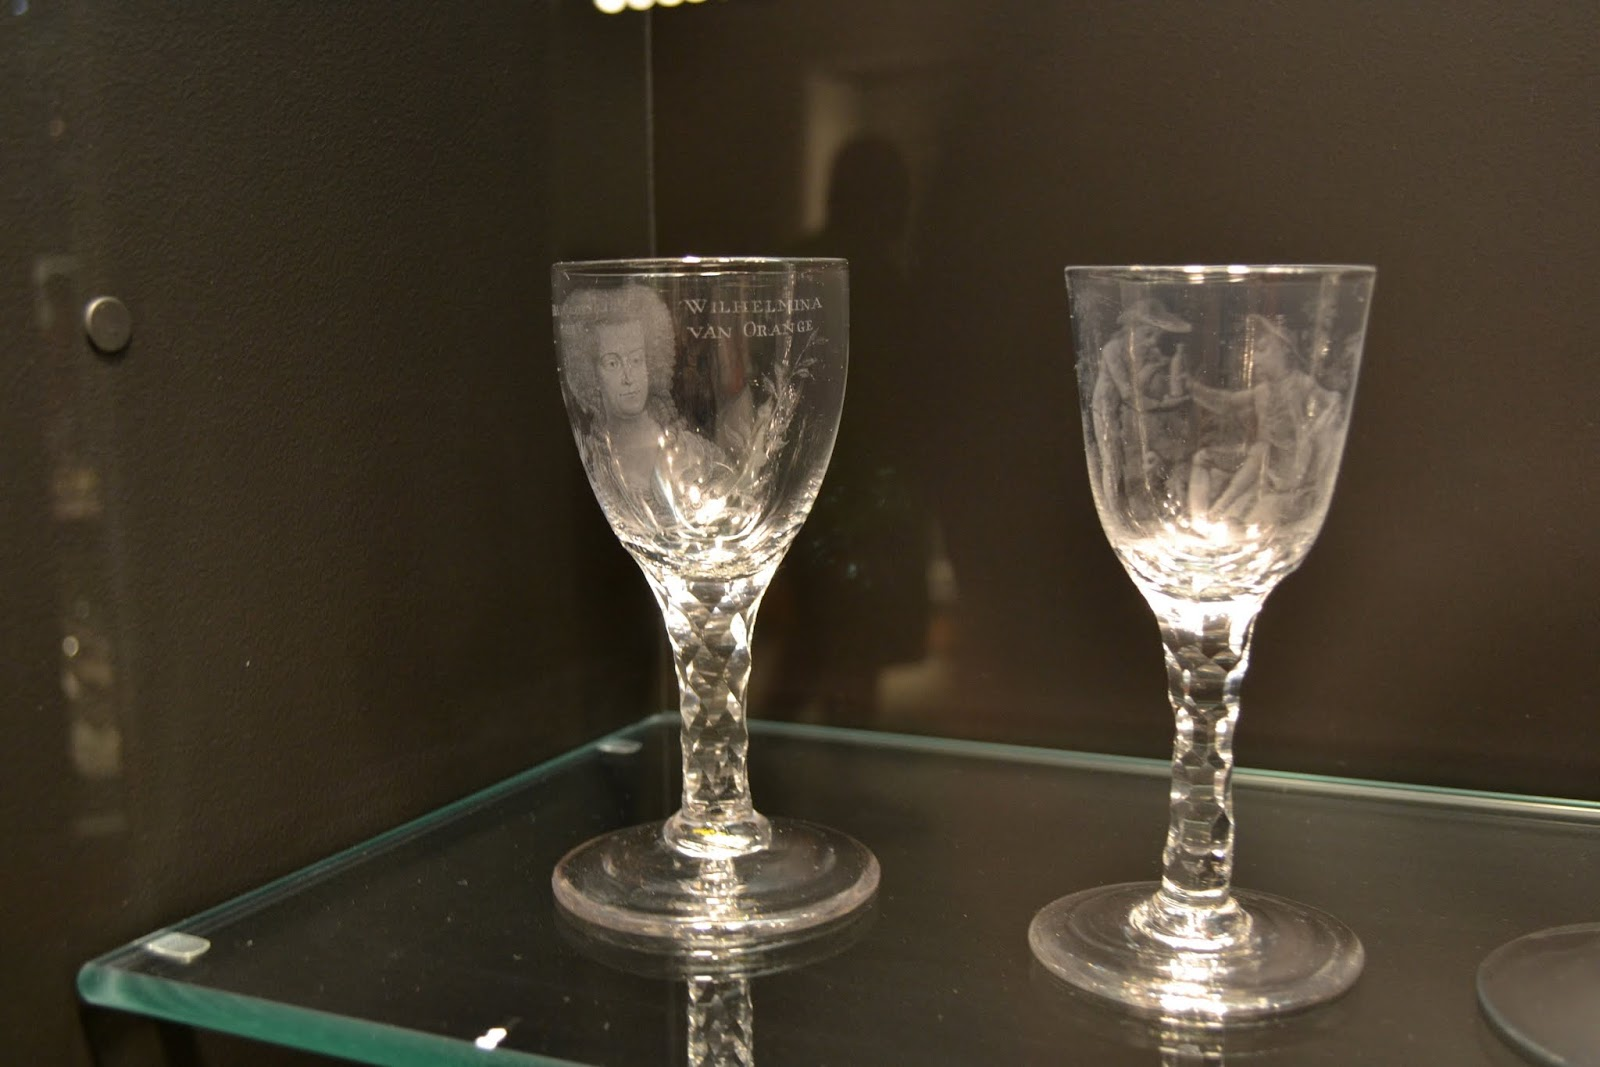 Музей стекла в Корнинг, штат Нью-Йорк (Corning Museum of Glass, Corning, New York)